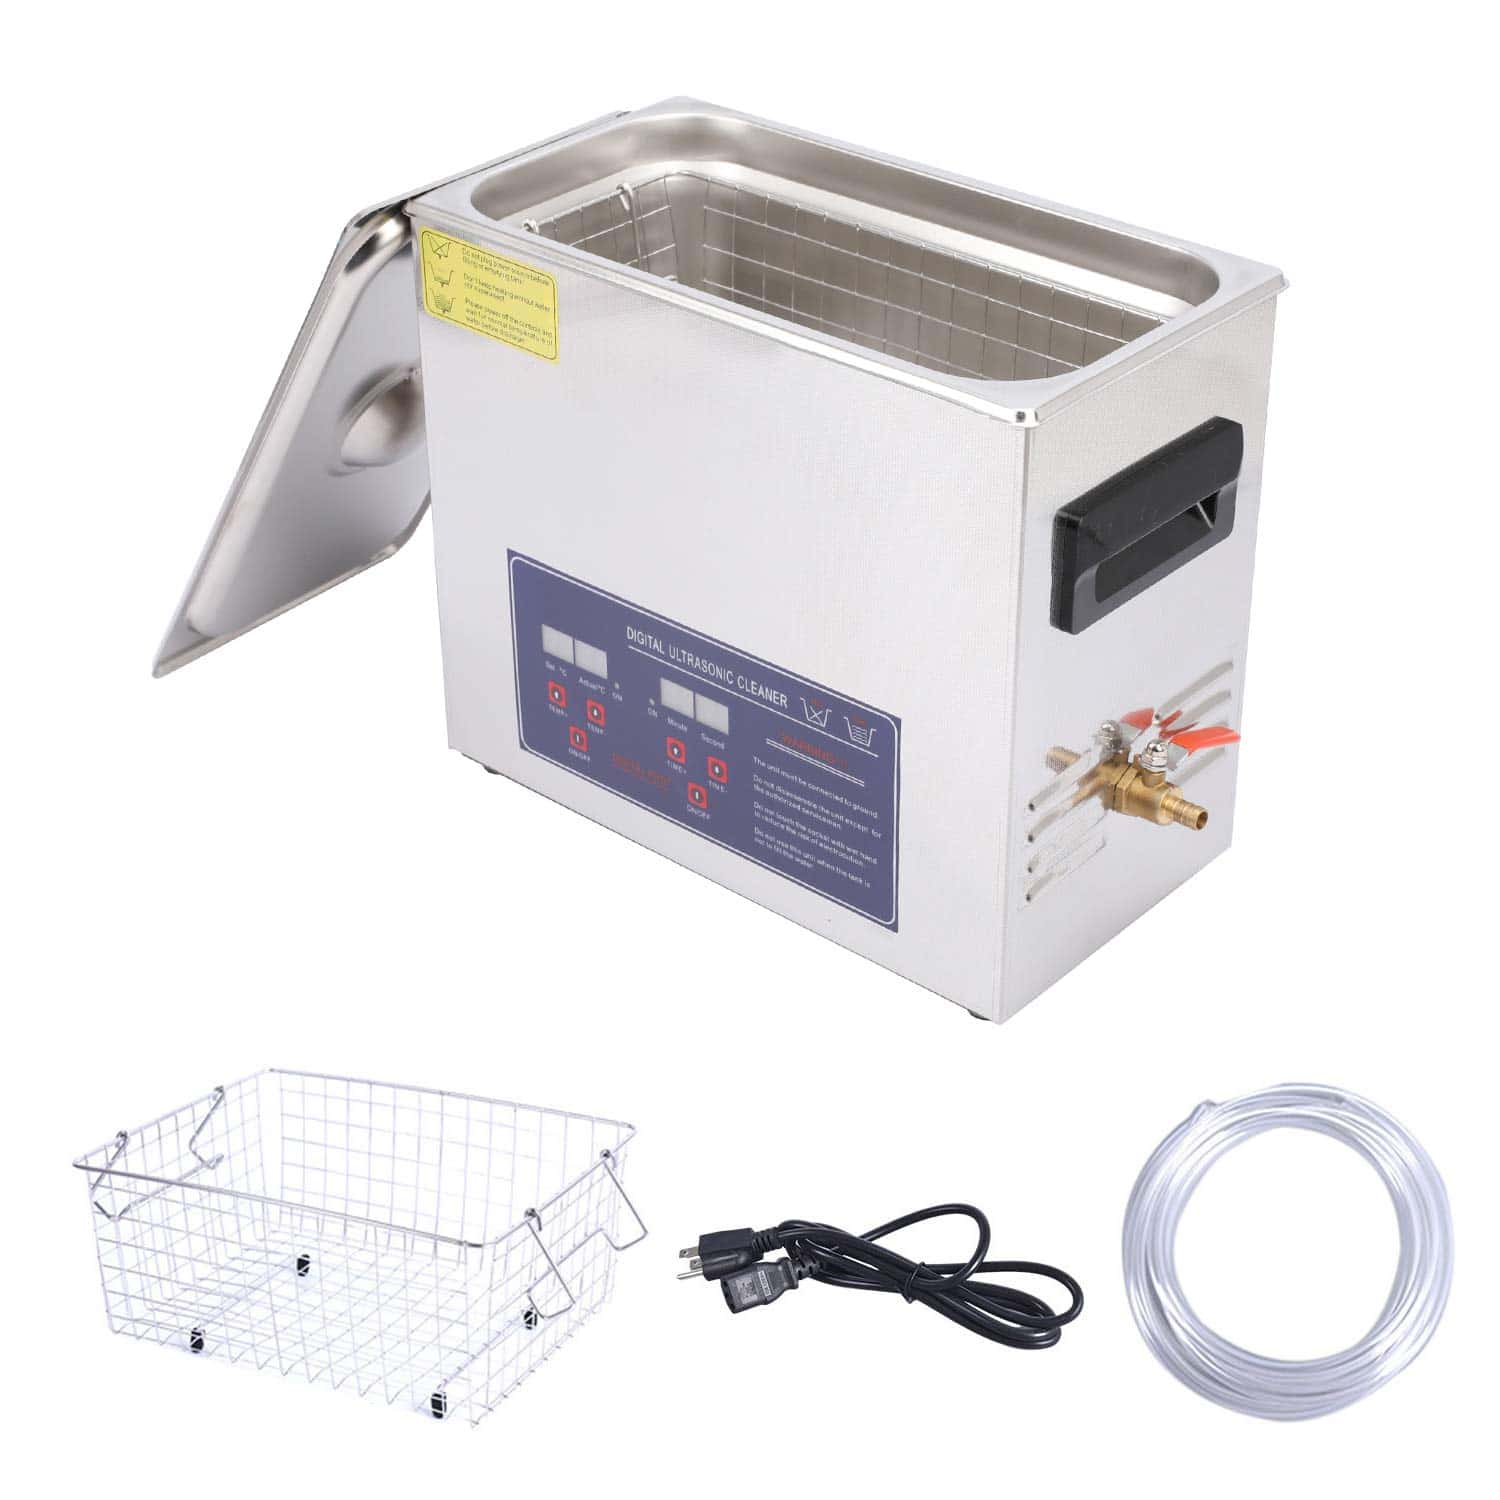 HATISS Professional Ultrasonic Cleaner with Digital Timer and Heater